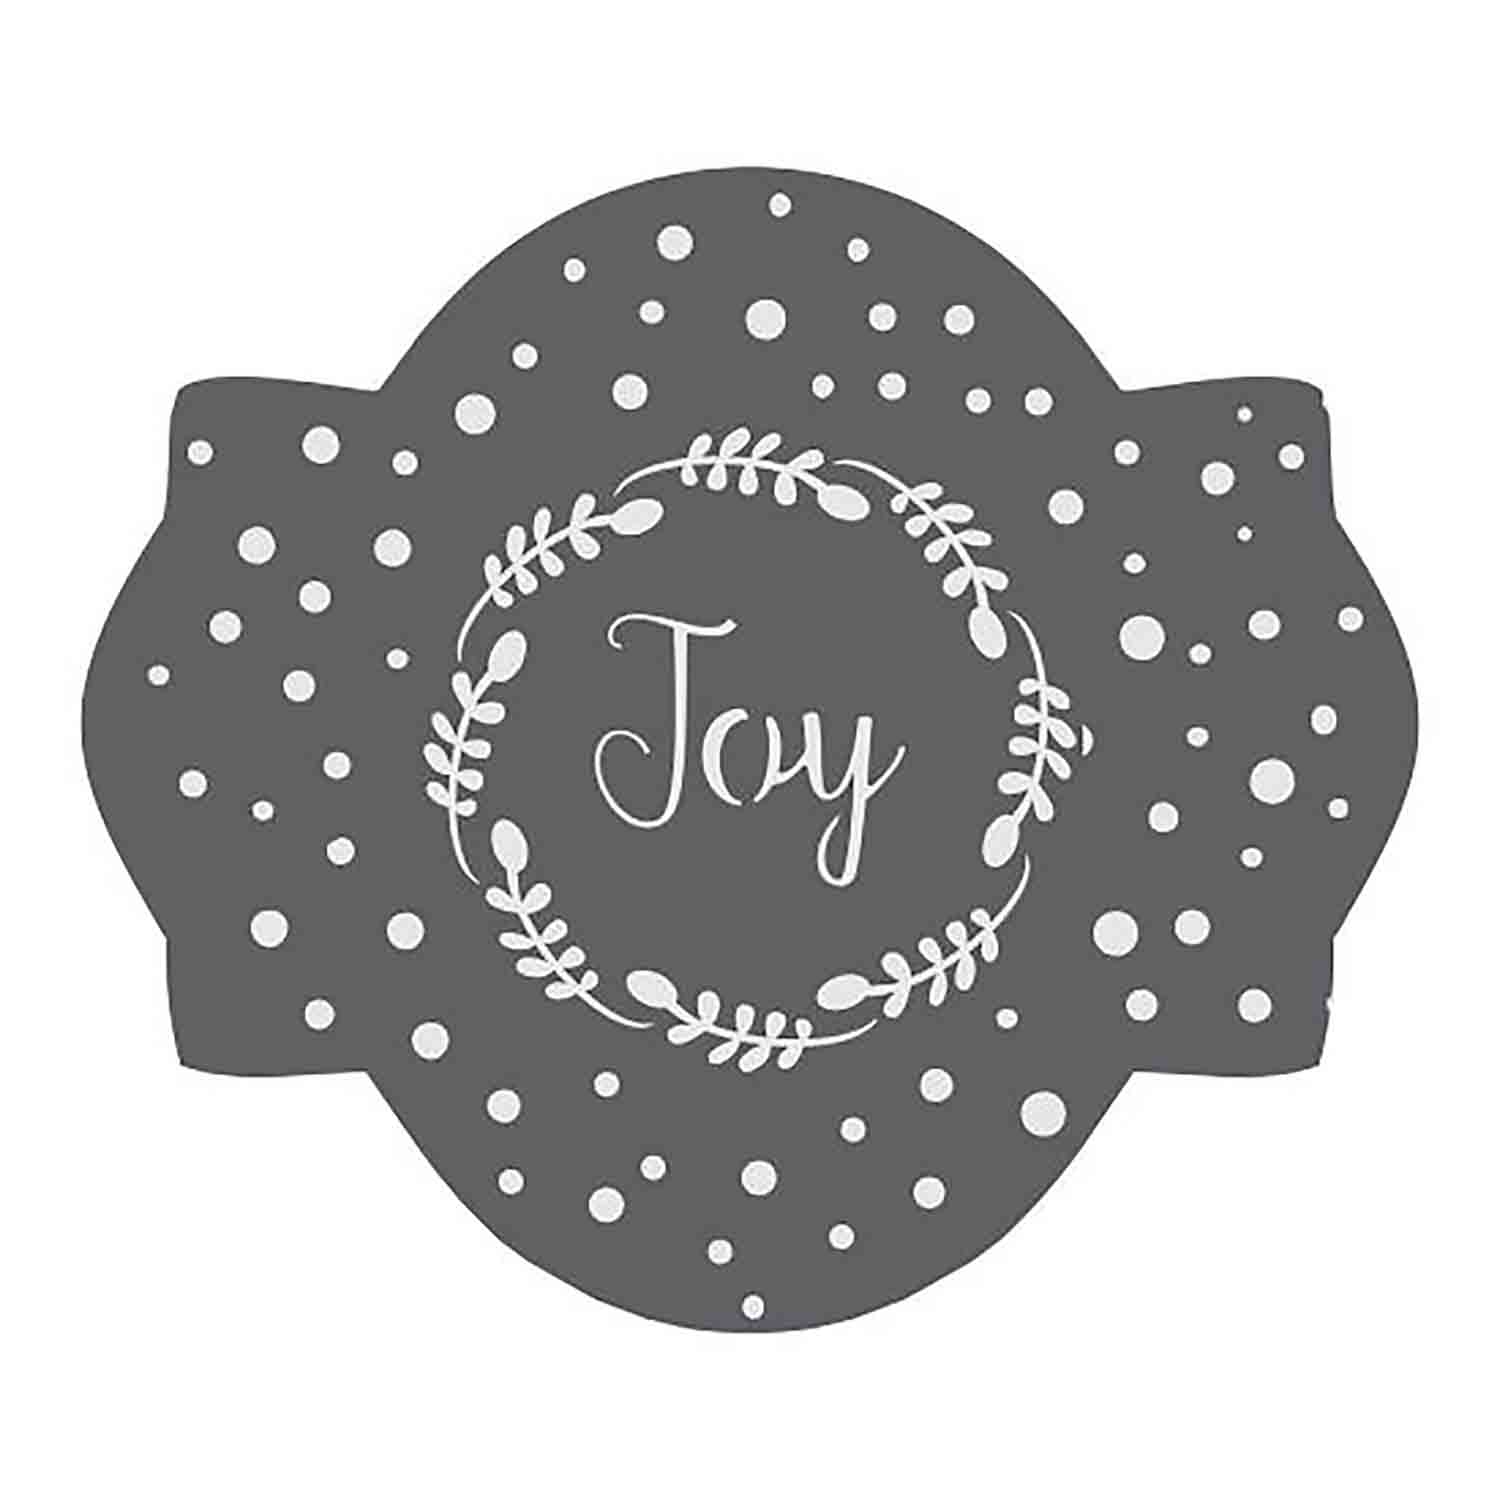 Joy Cookie Stencil Set by Julia M Usher